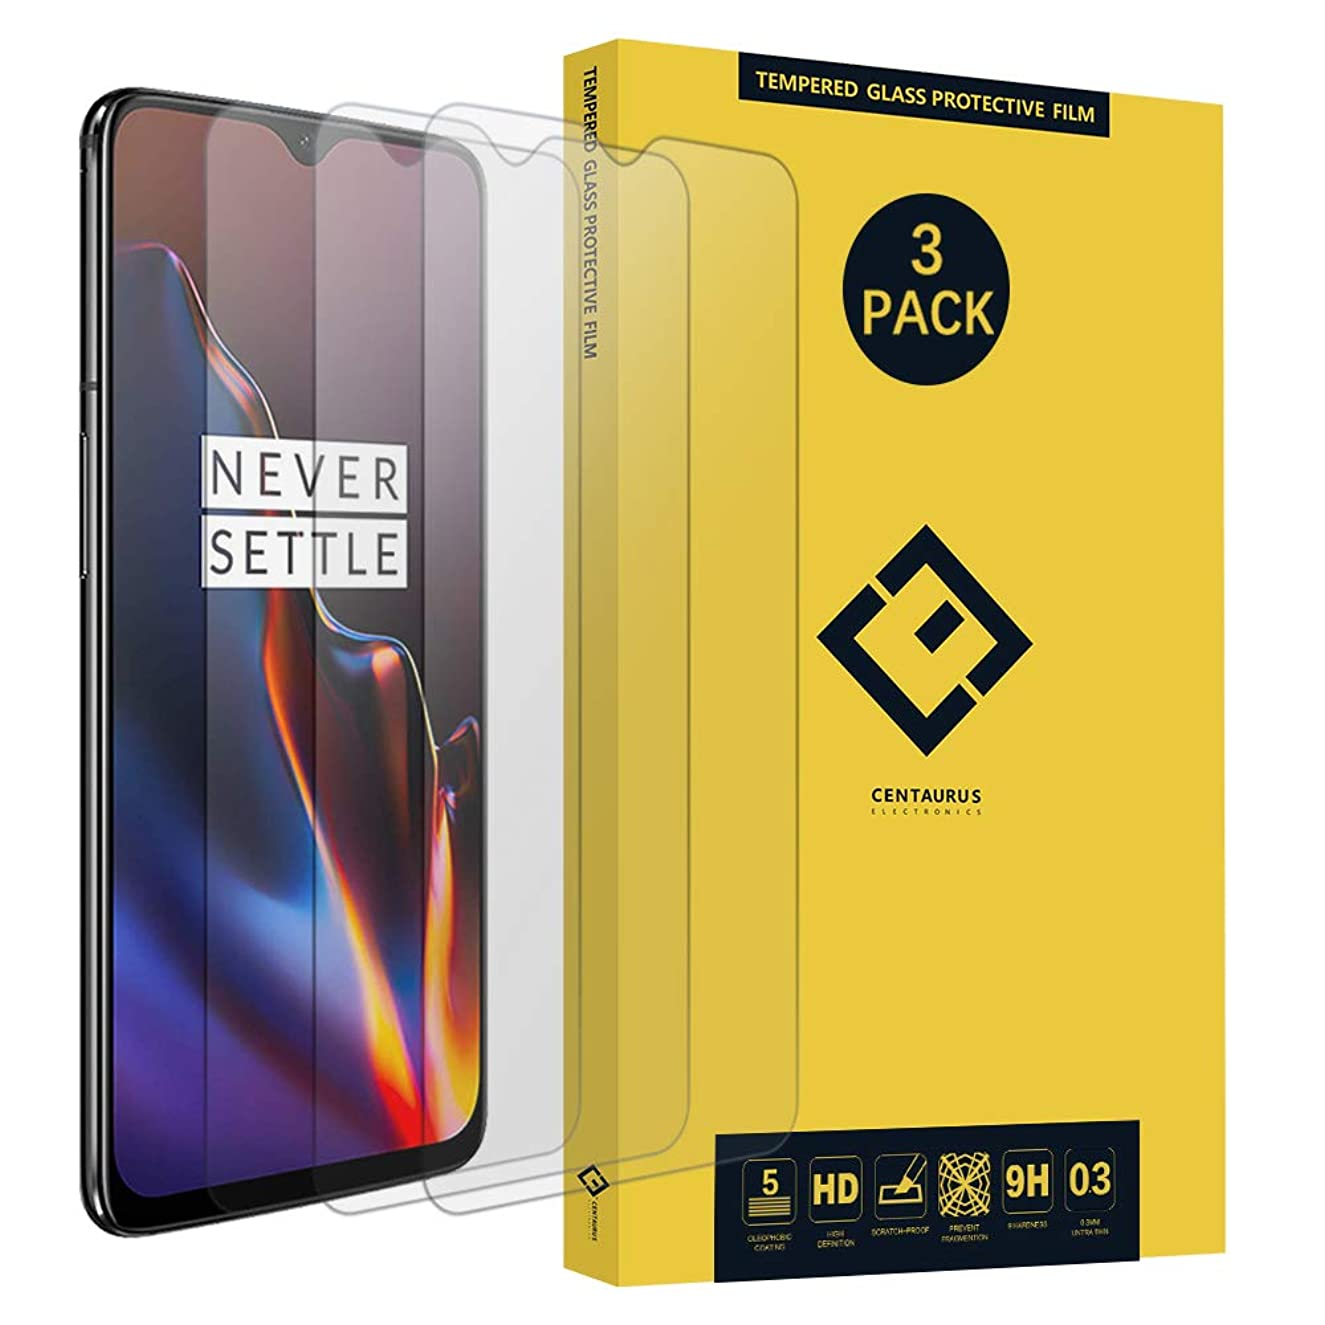 CENTAURUS Replacement for OnePlus 6 Soft Hydrogel Screen Protector, (3 Pack) Ultra-Thin High Sensitivity Water Resistant Clear Full Coverage Screen Protector Film fit OnePlus 6 A6000 A6003 (Not Glass)